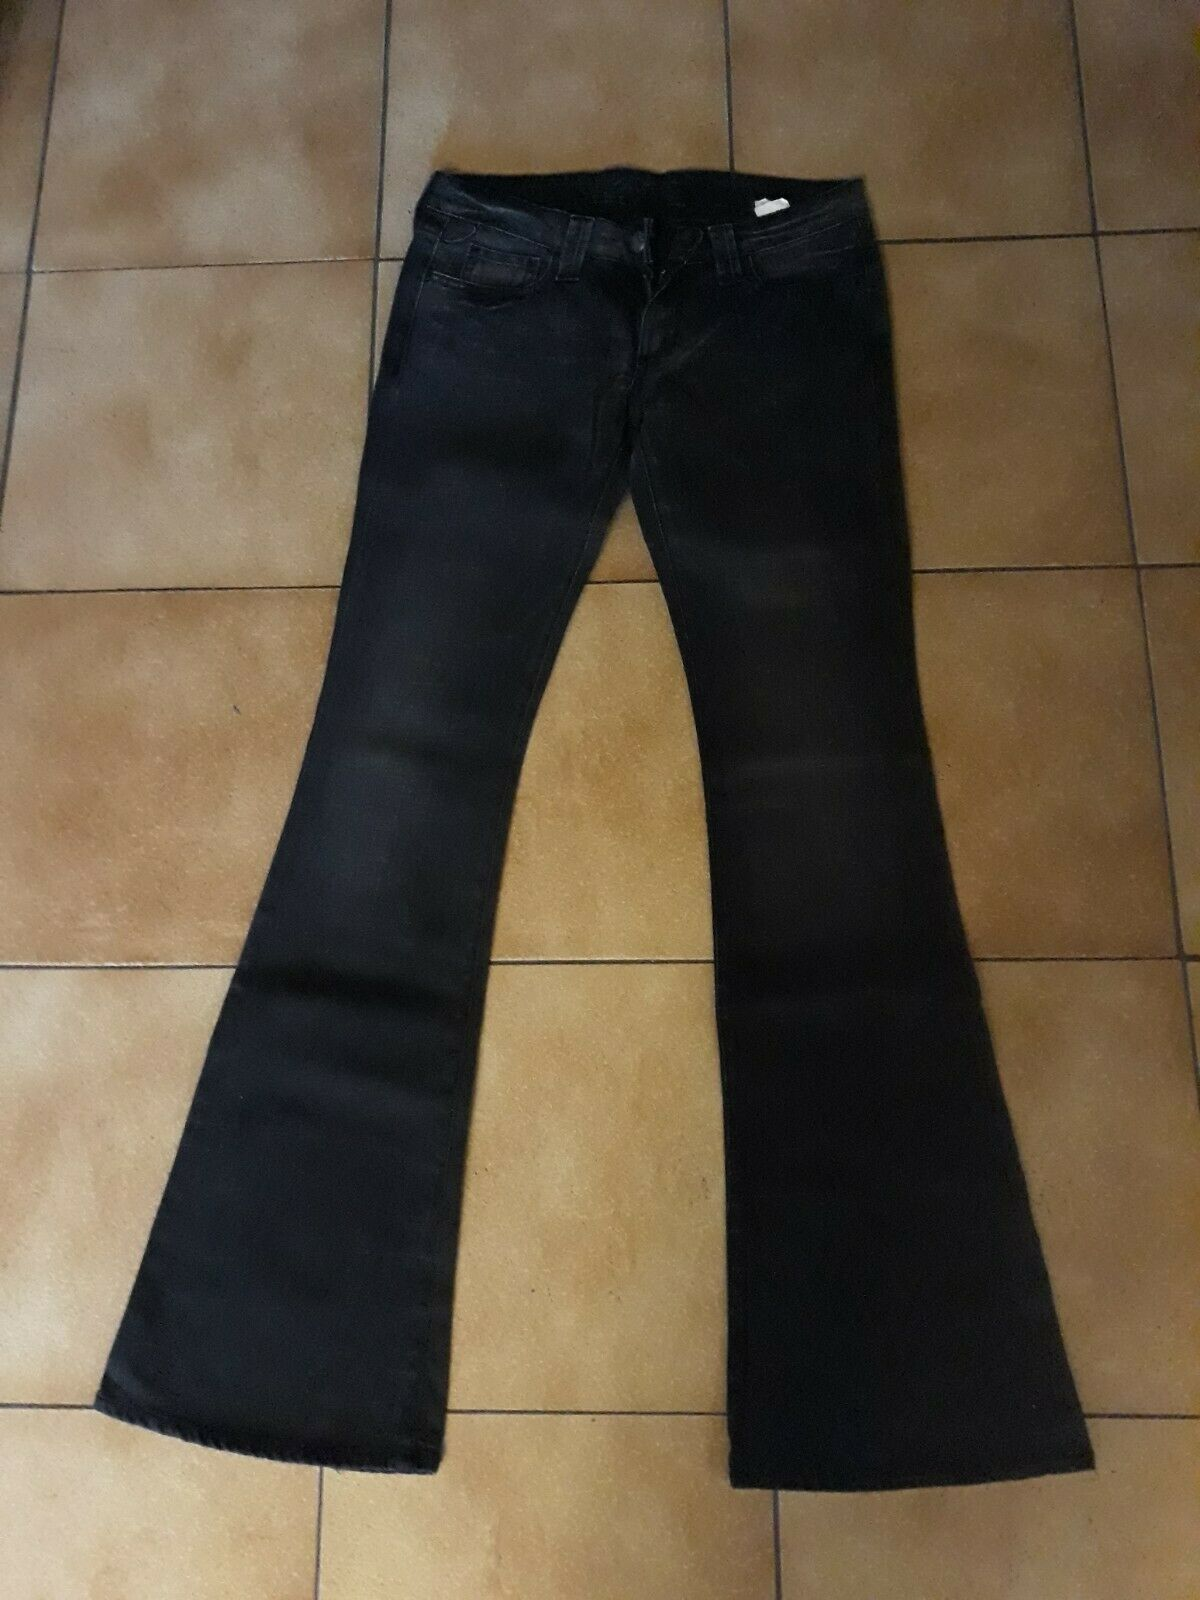 Long jean lois noir slim stretch flare t 38 w30 l34? femme be